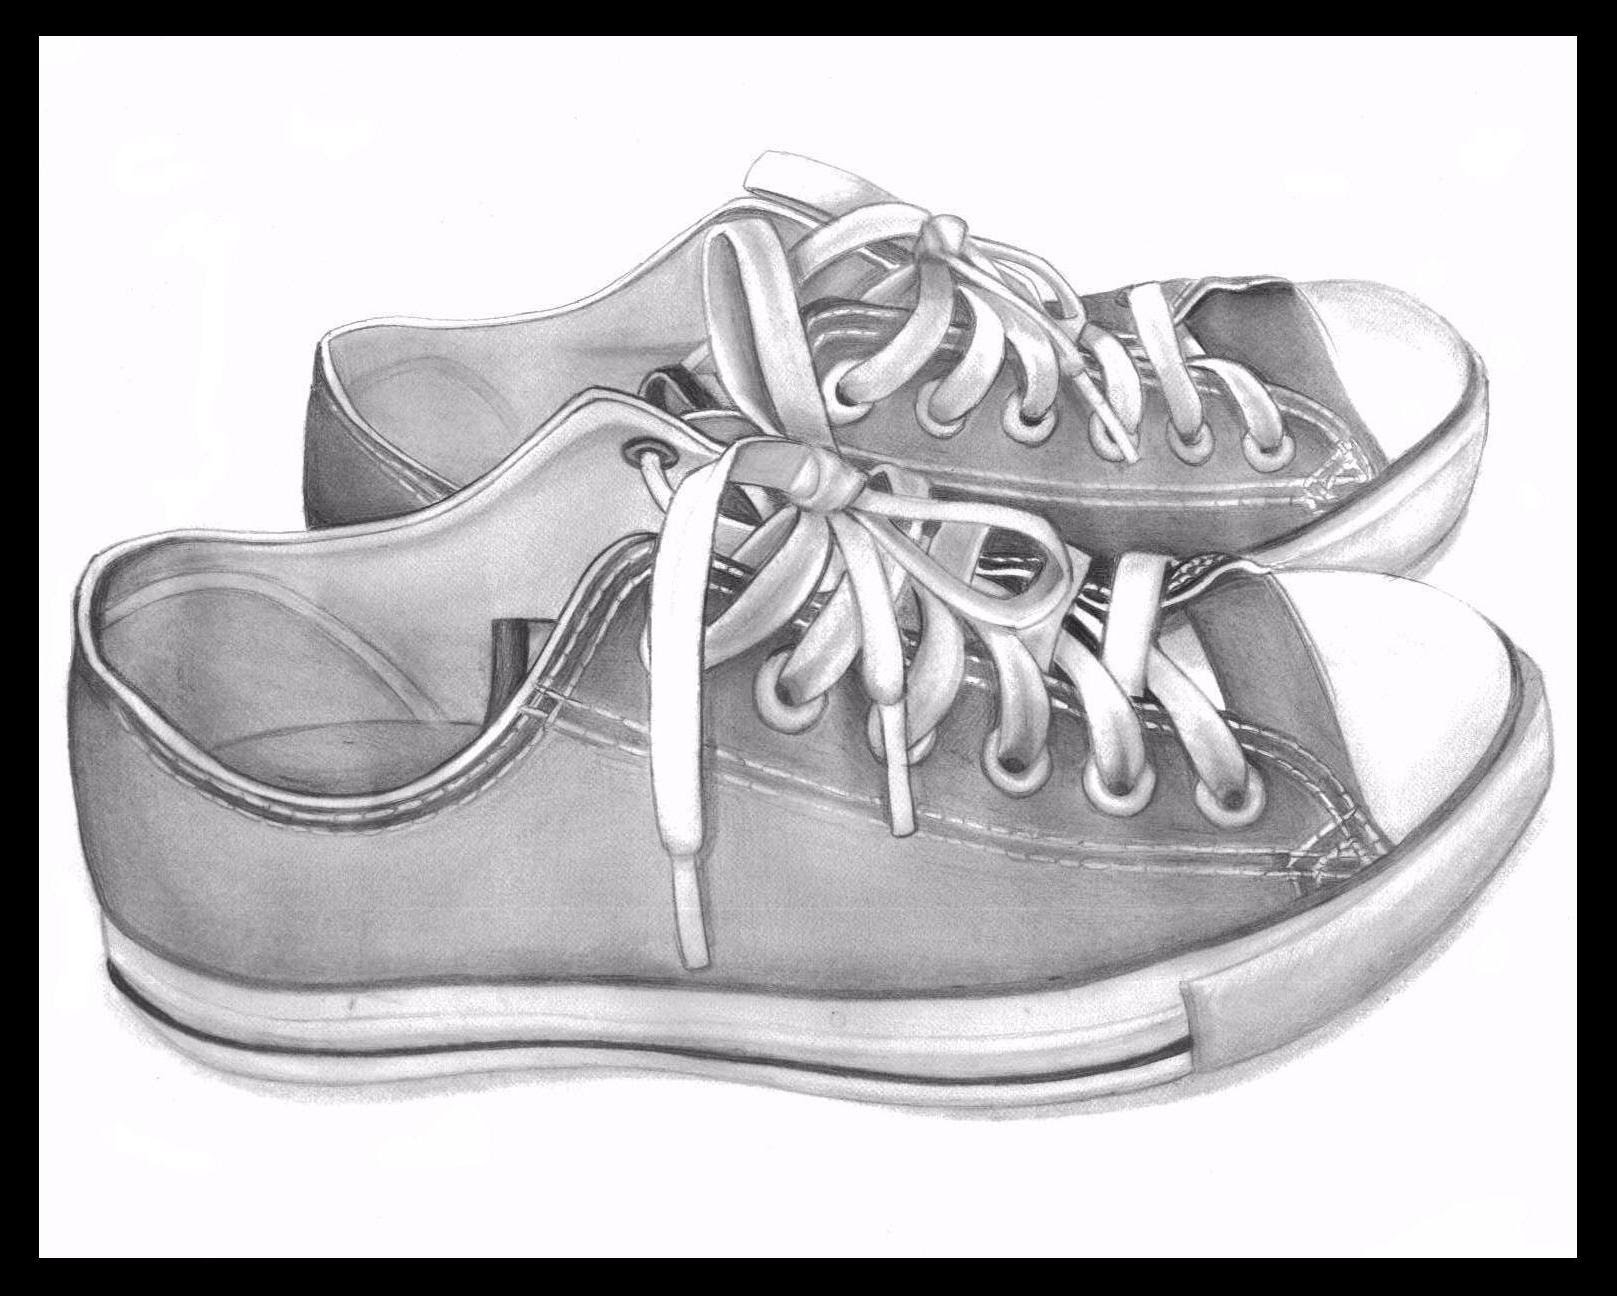 Drawn shoe background Shoes With Pencil  3d